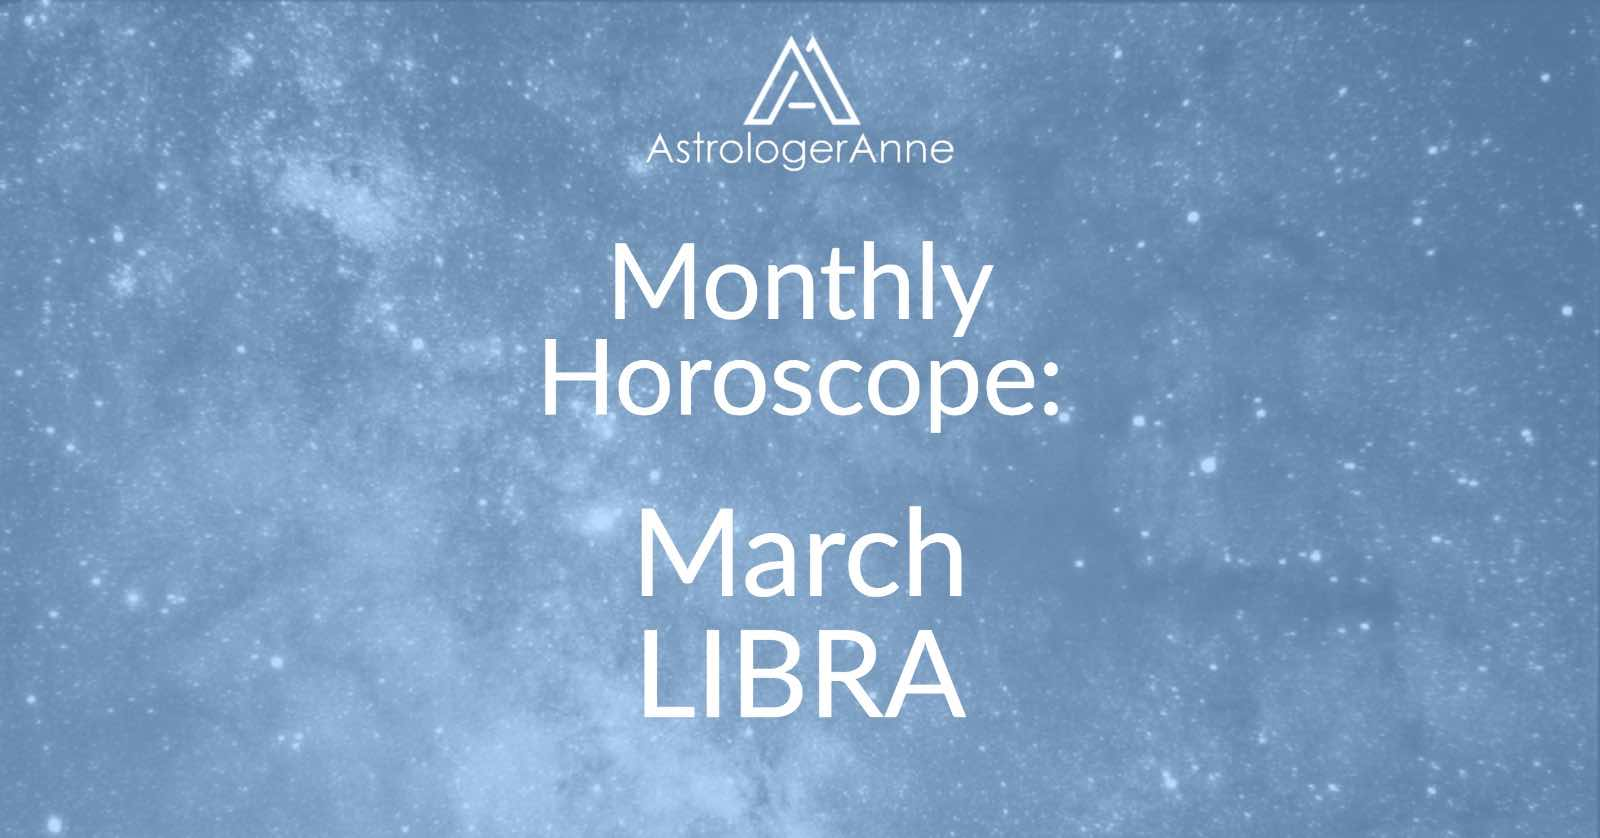 Libra monthly horoscope March 2019